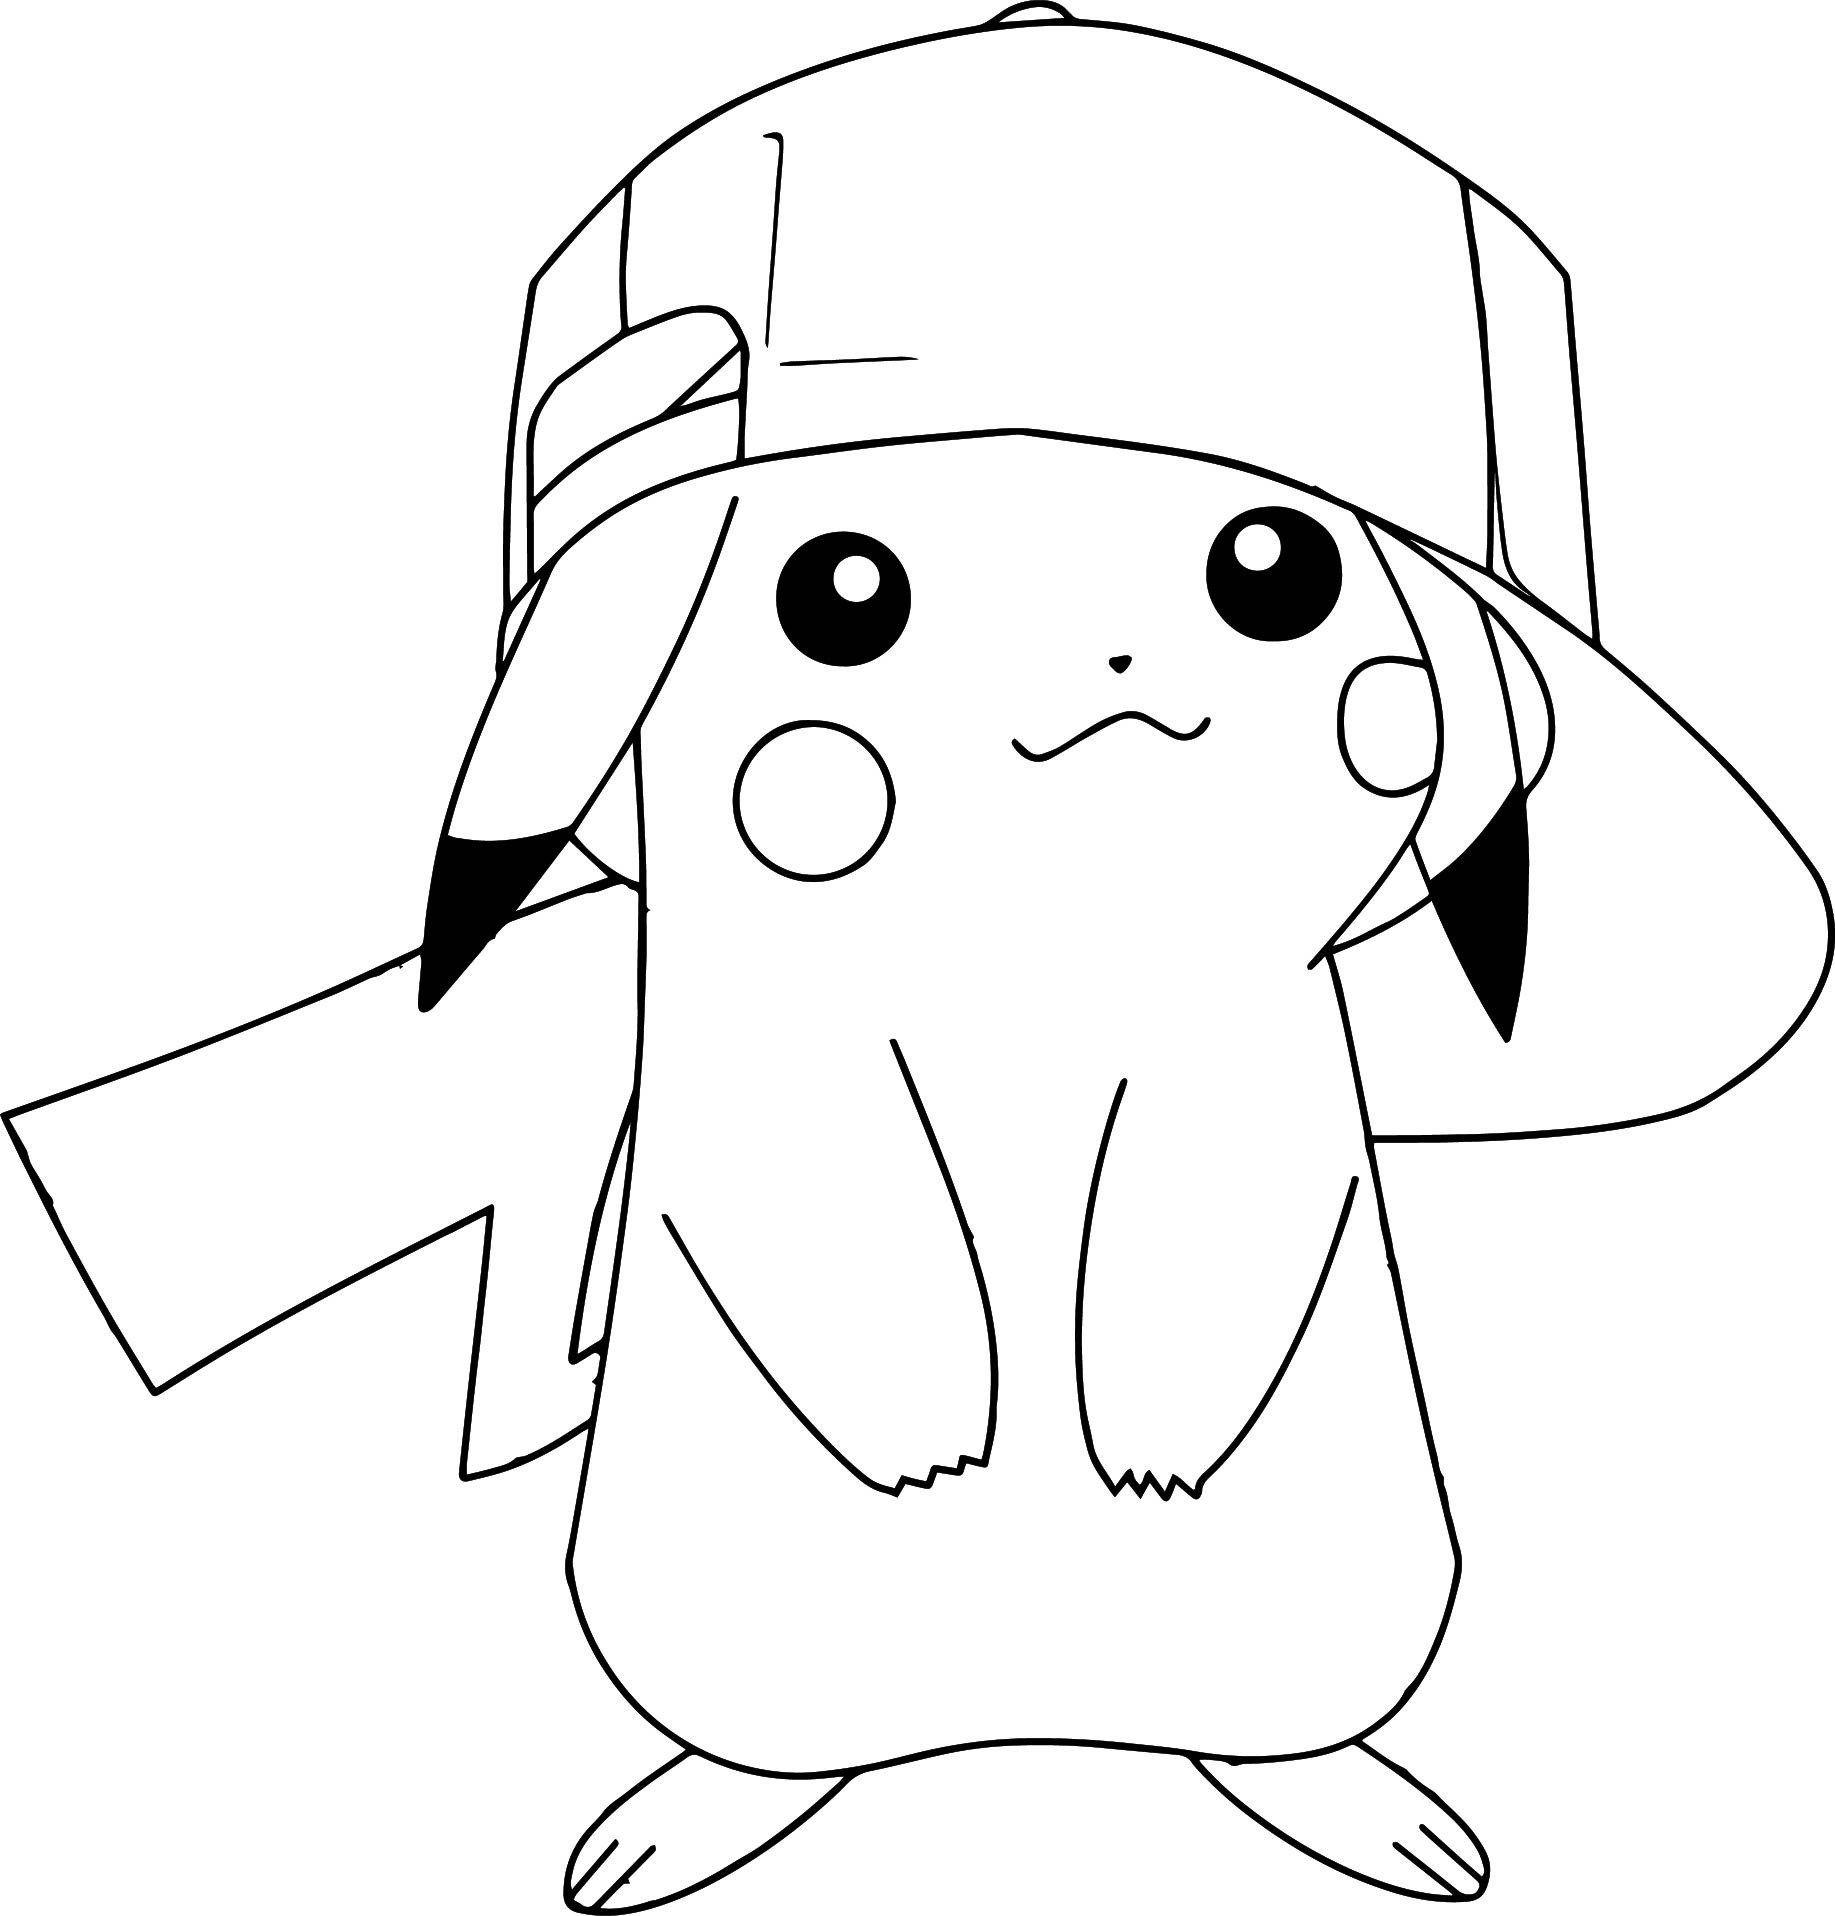 445b1d Cute Eevee Coloring Pages Wiring Resources